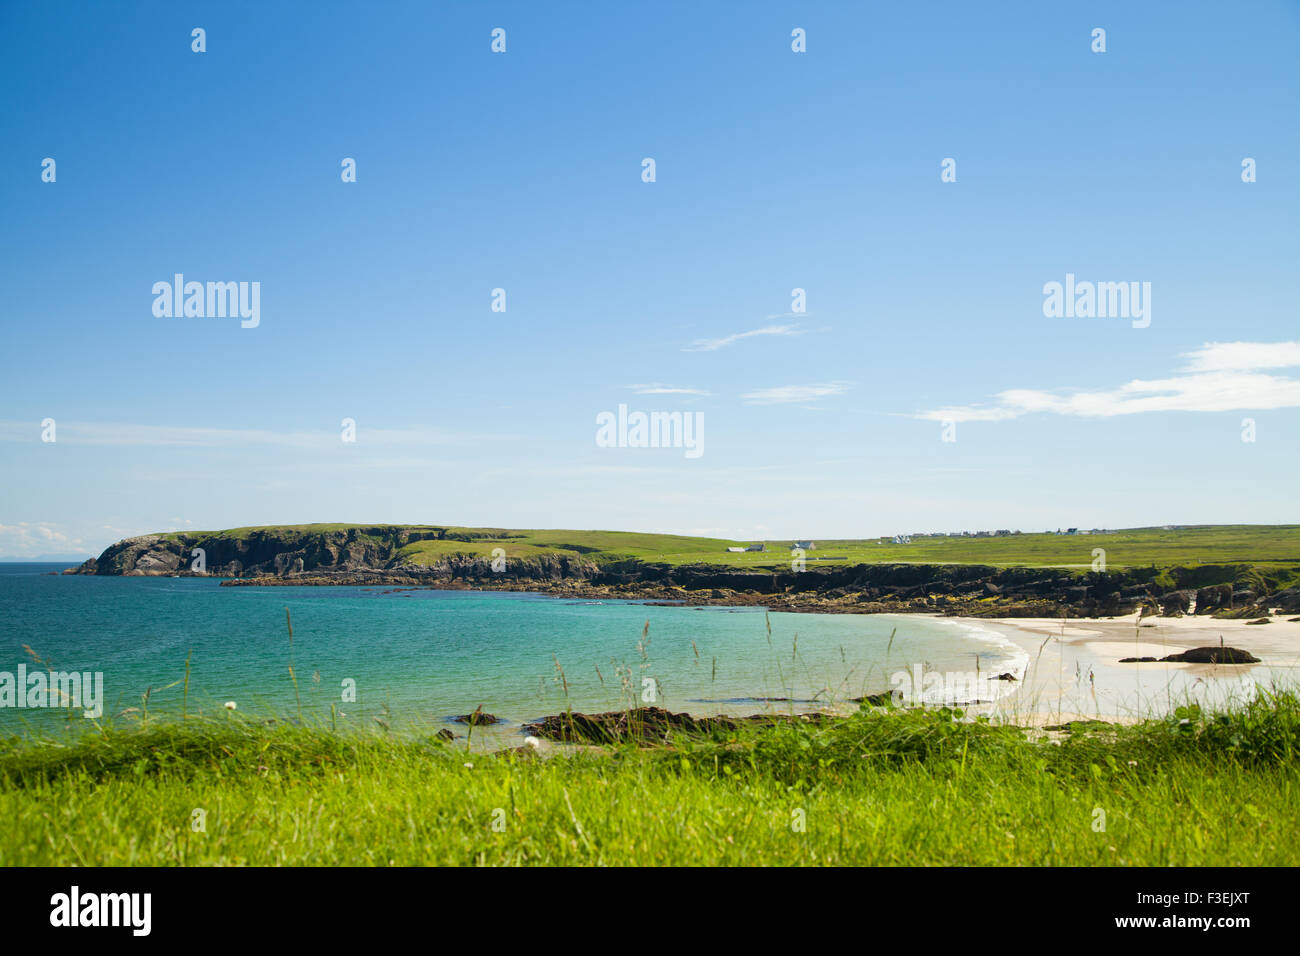 The beach at Port of Ness, Ness,  Isle of Lewis, Outer Hebrides,  Scotland,  United Kingdom. - Stock Image